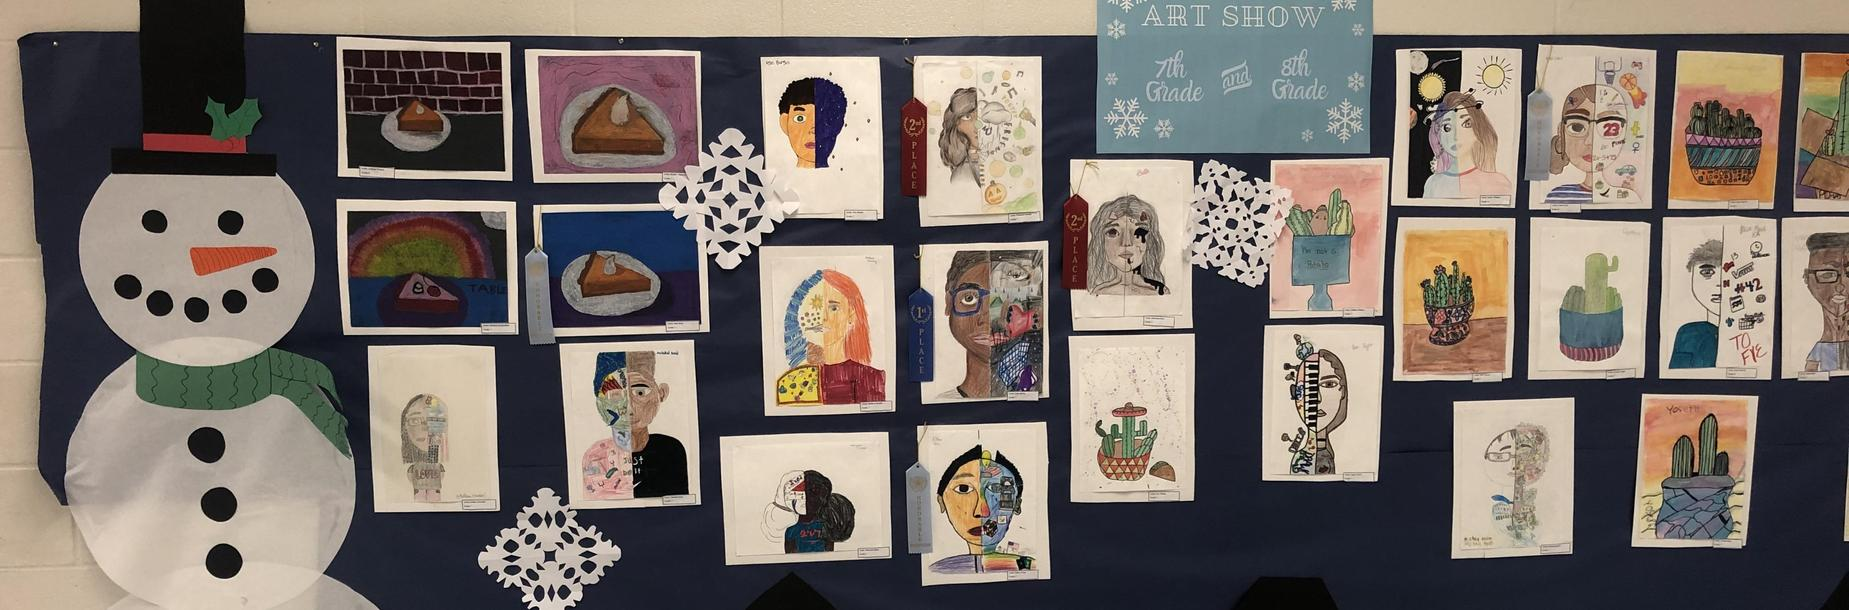 Art Show Winter 2019!